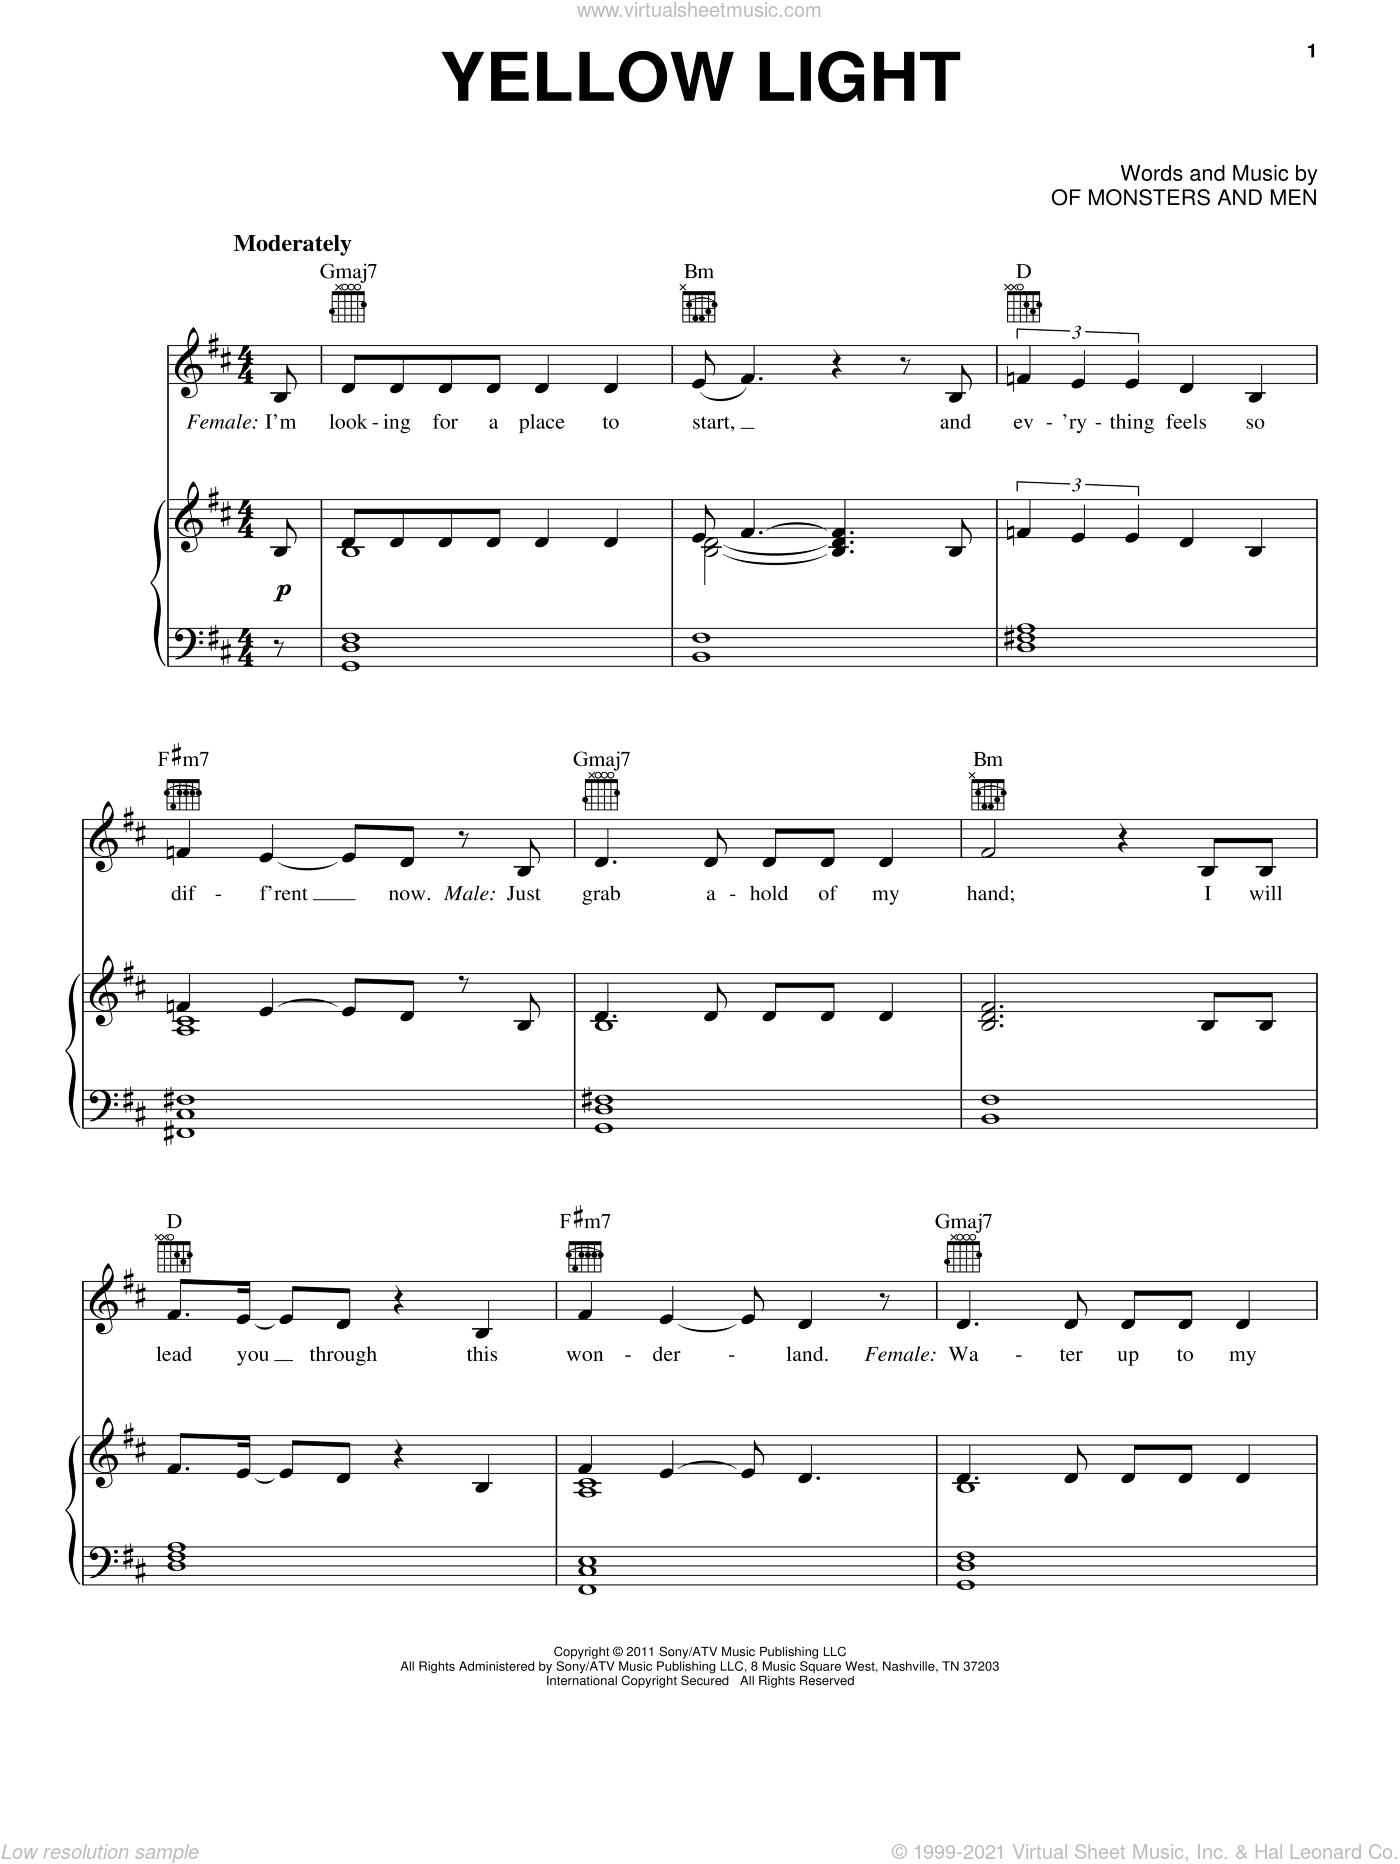 Yellow Light sheet music for voice, piano or guitar by Of Monsters And Men, intermediate skill level